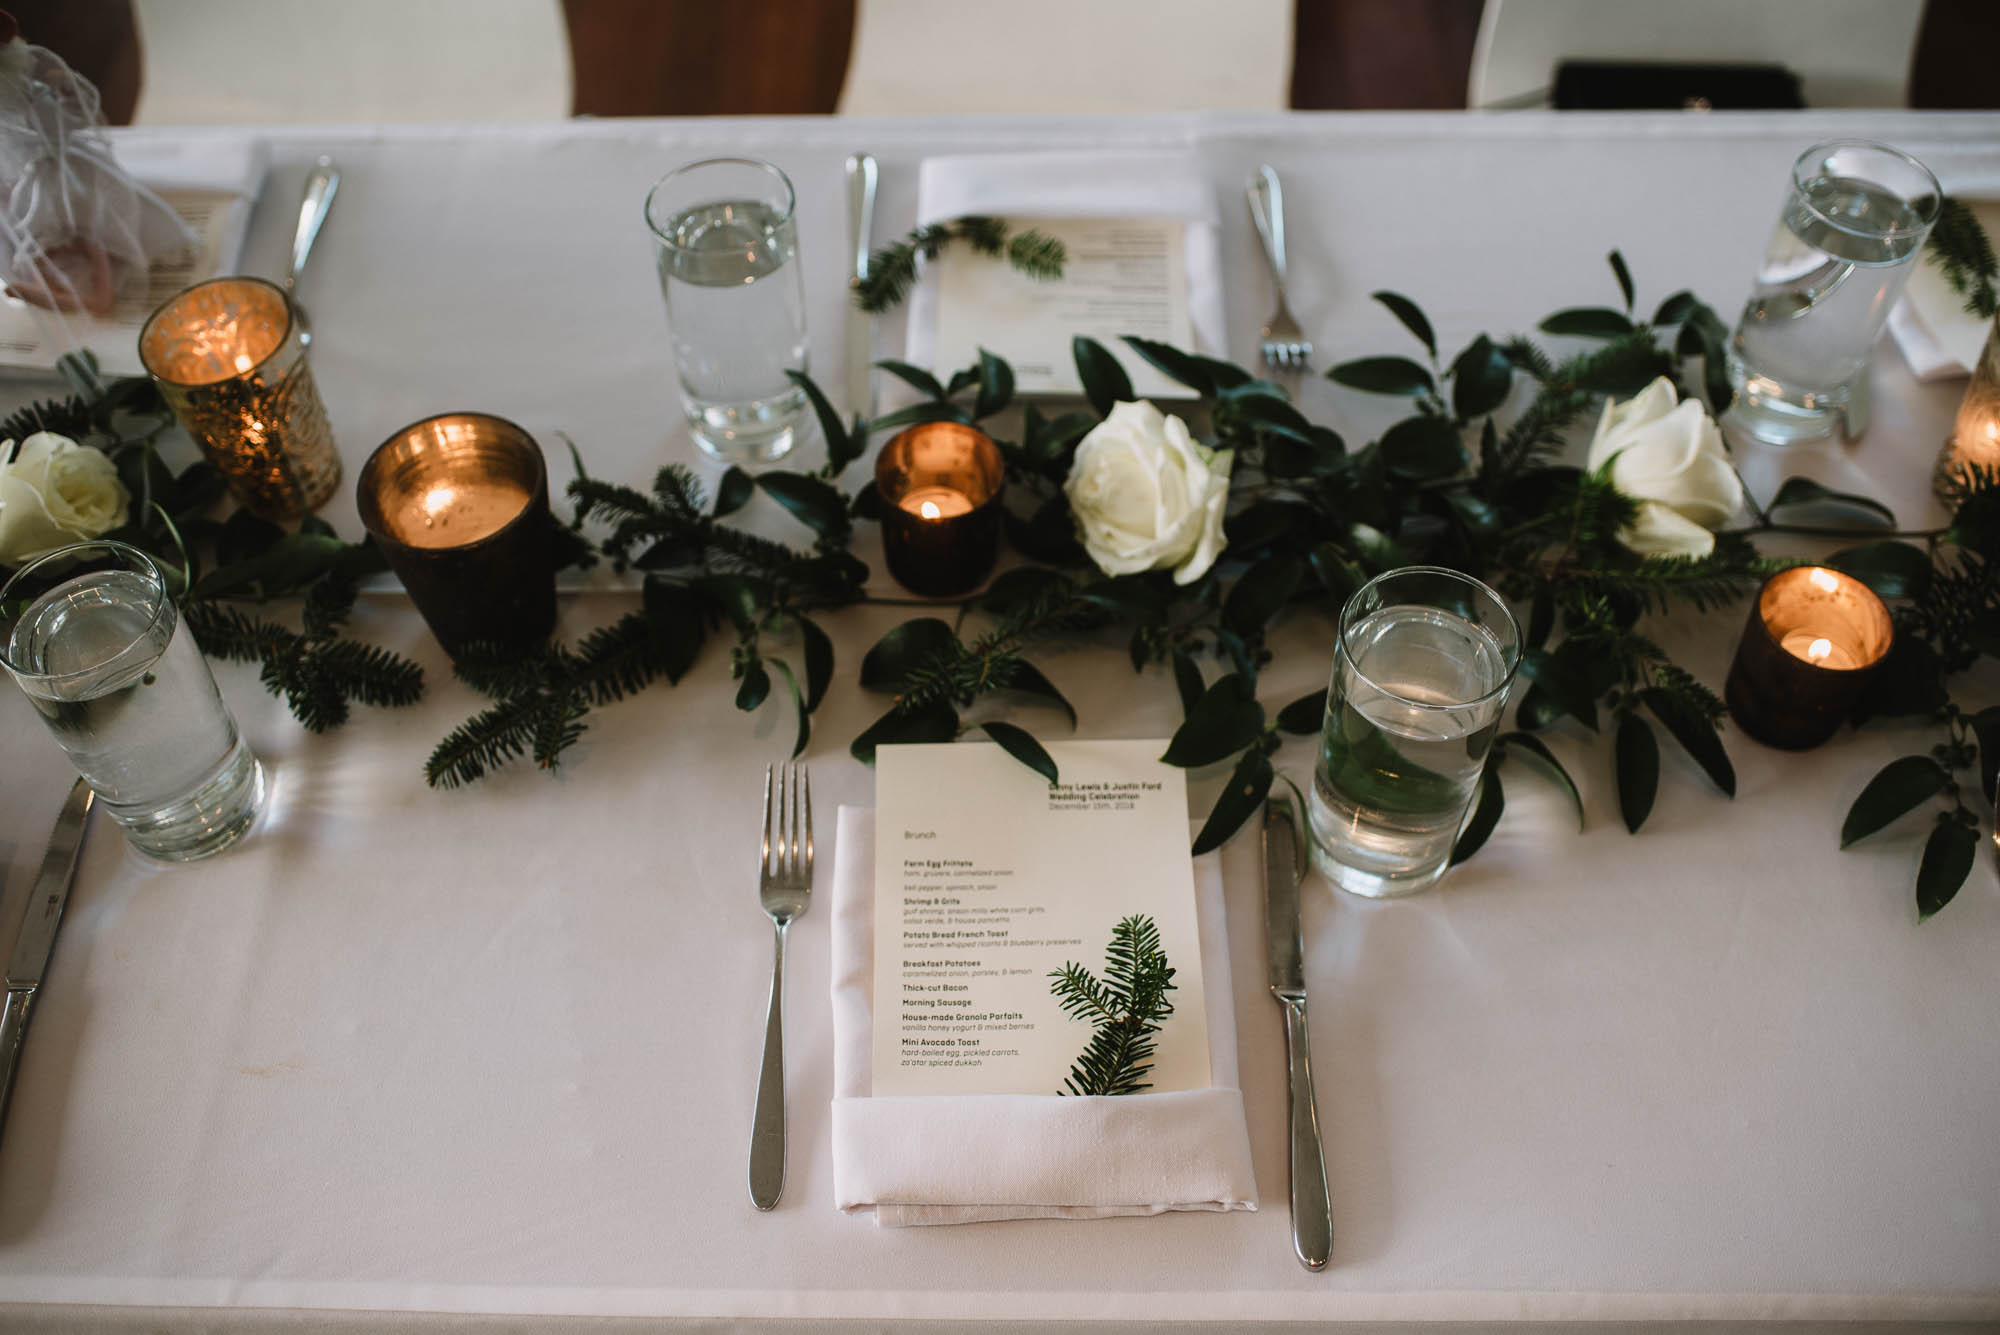 brunch wedding details at the south congress hotel in Austin texas, Austin wedding photography, morning weddings in Austin, brunch weddings, elope in Austin